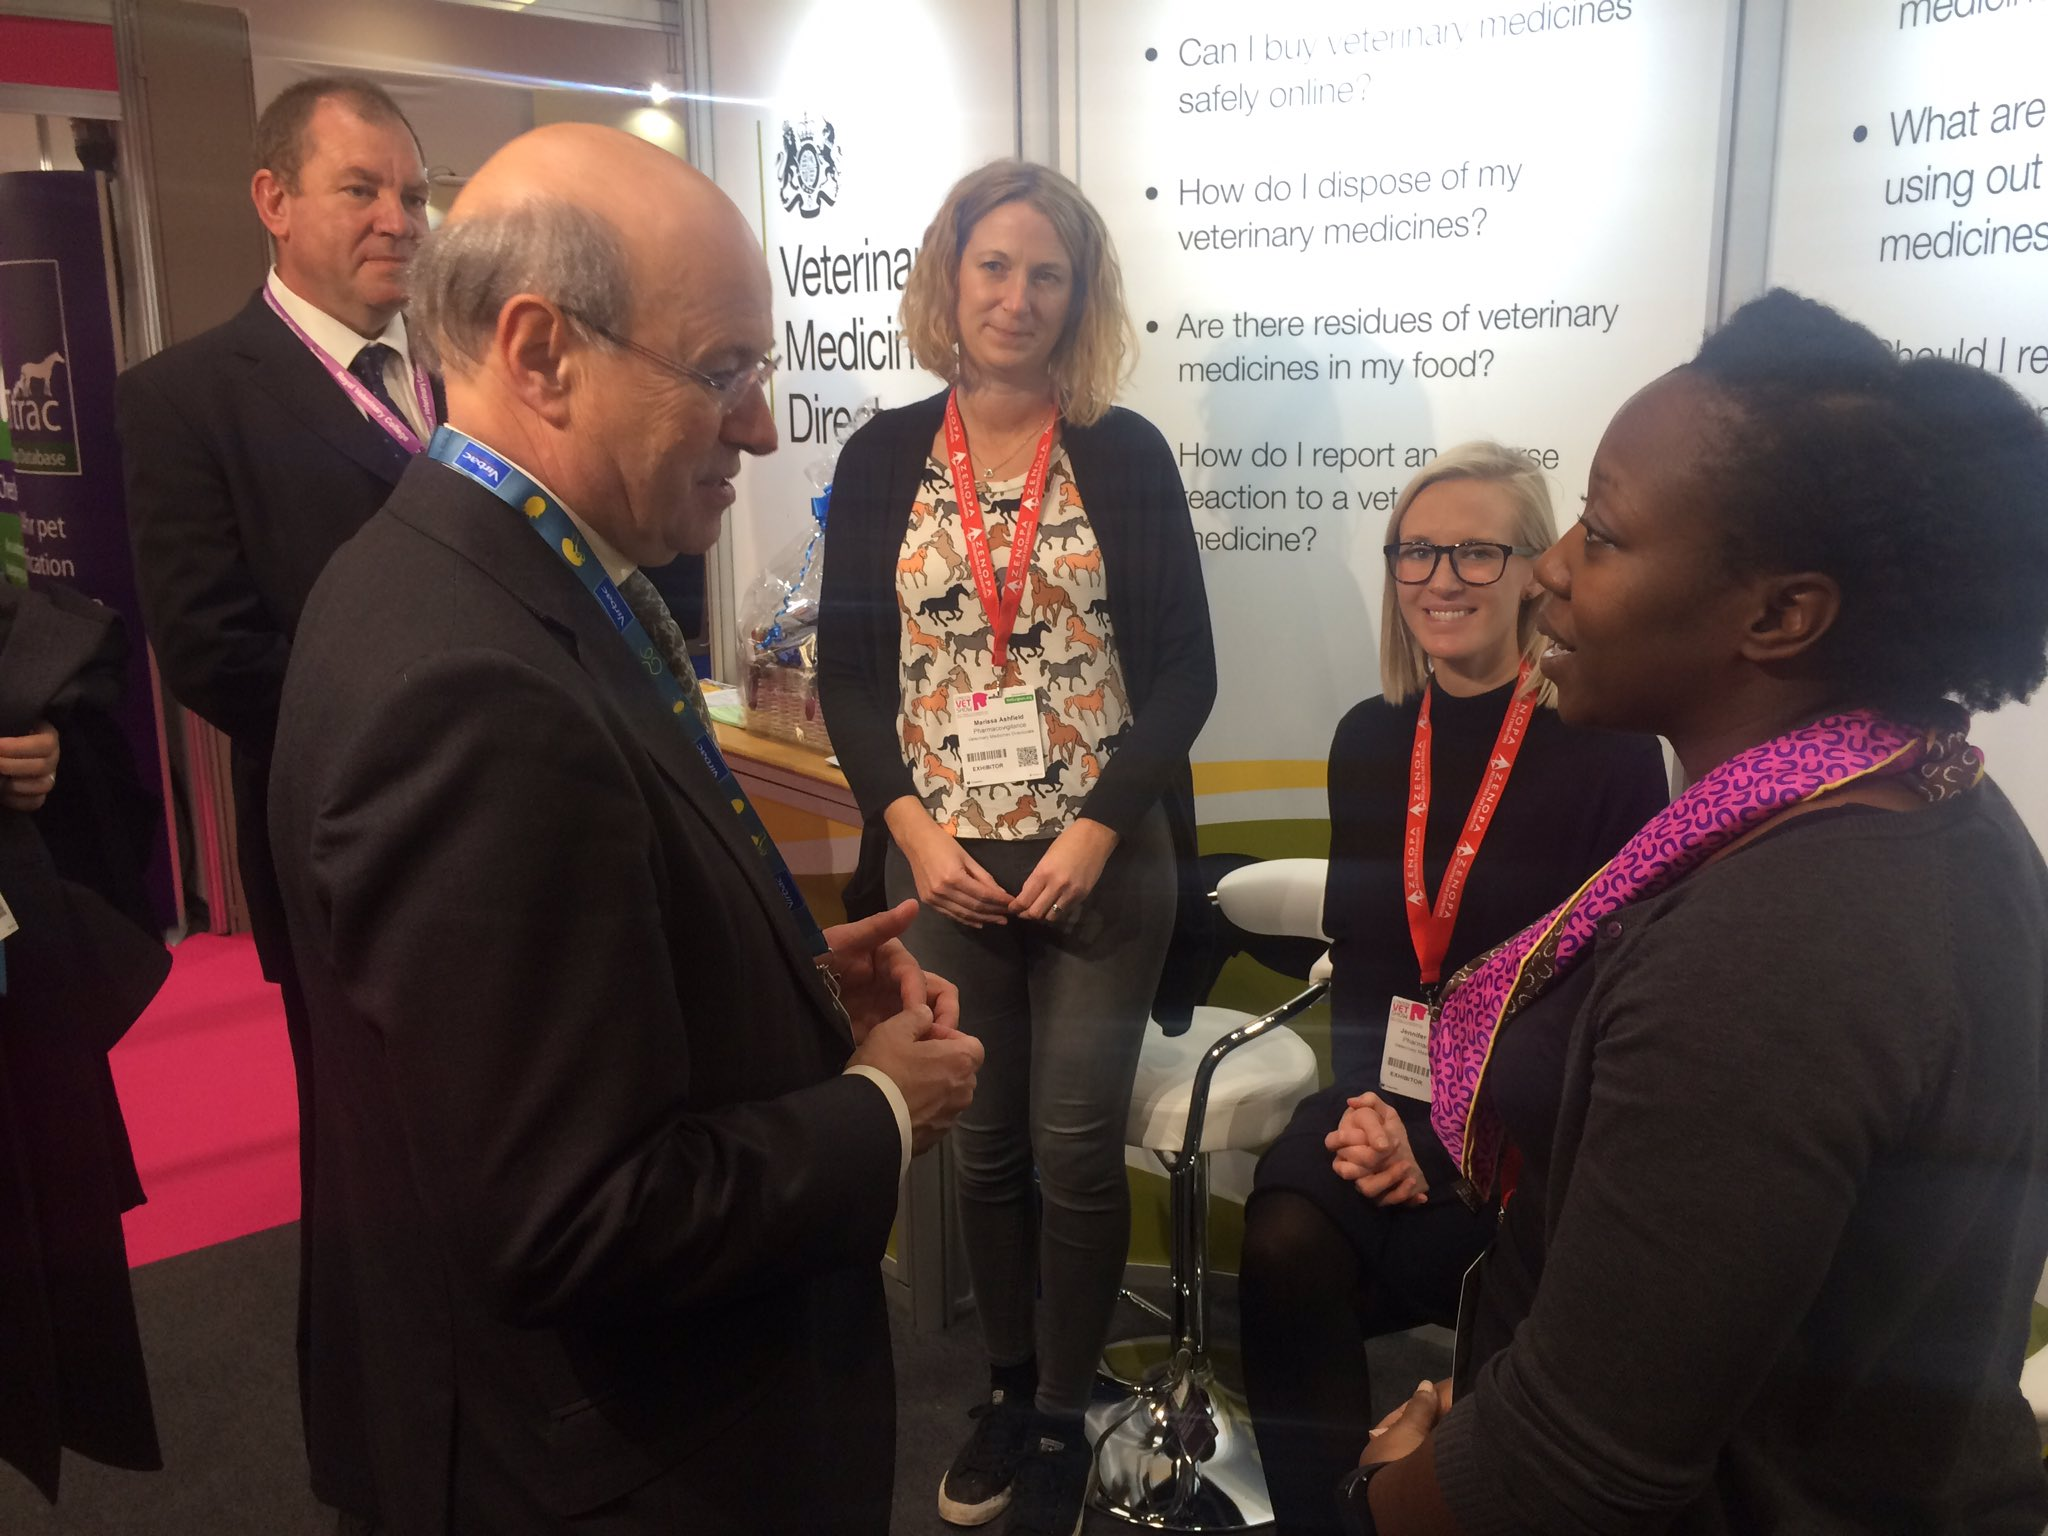 @DefraGovUK Minister Lord Gardiner & BVA JVP John Fishwick discuss AMR with #VMD vets at #vetshow #EAAD2016 https://t.co/hSushX9hca